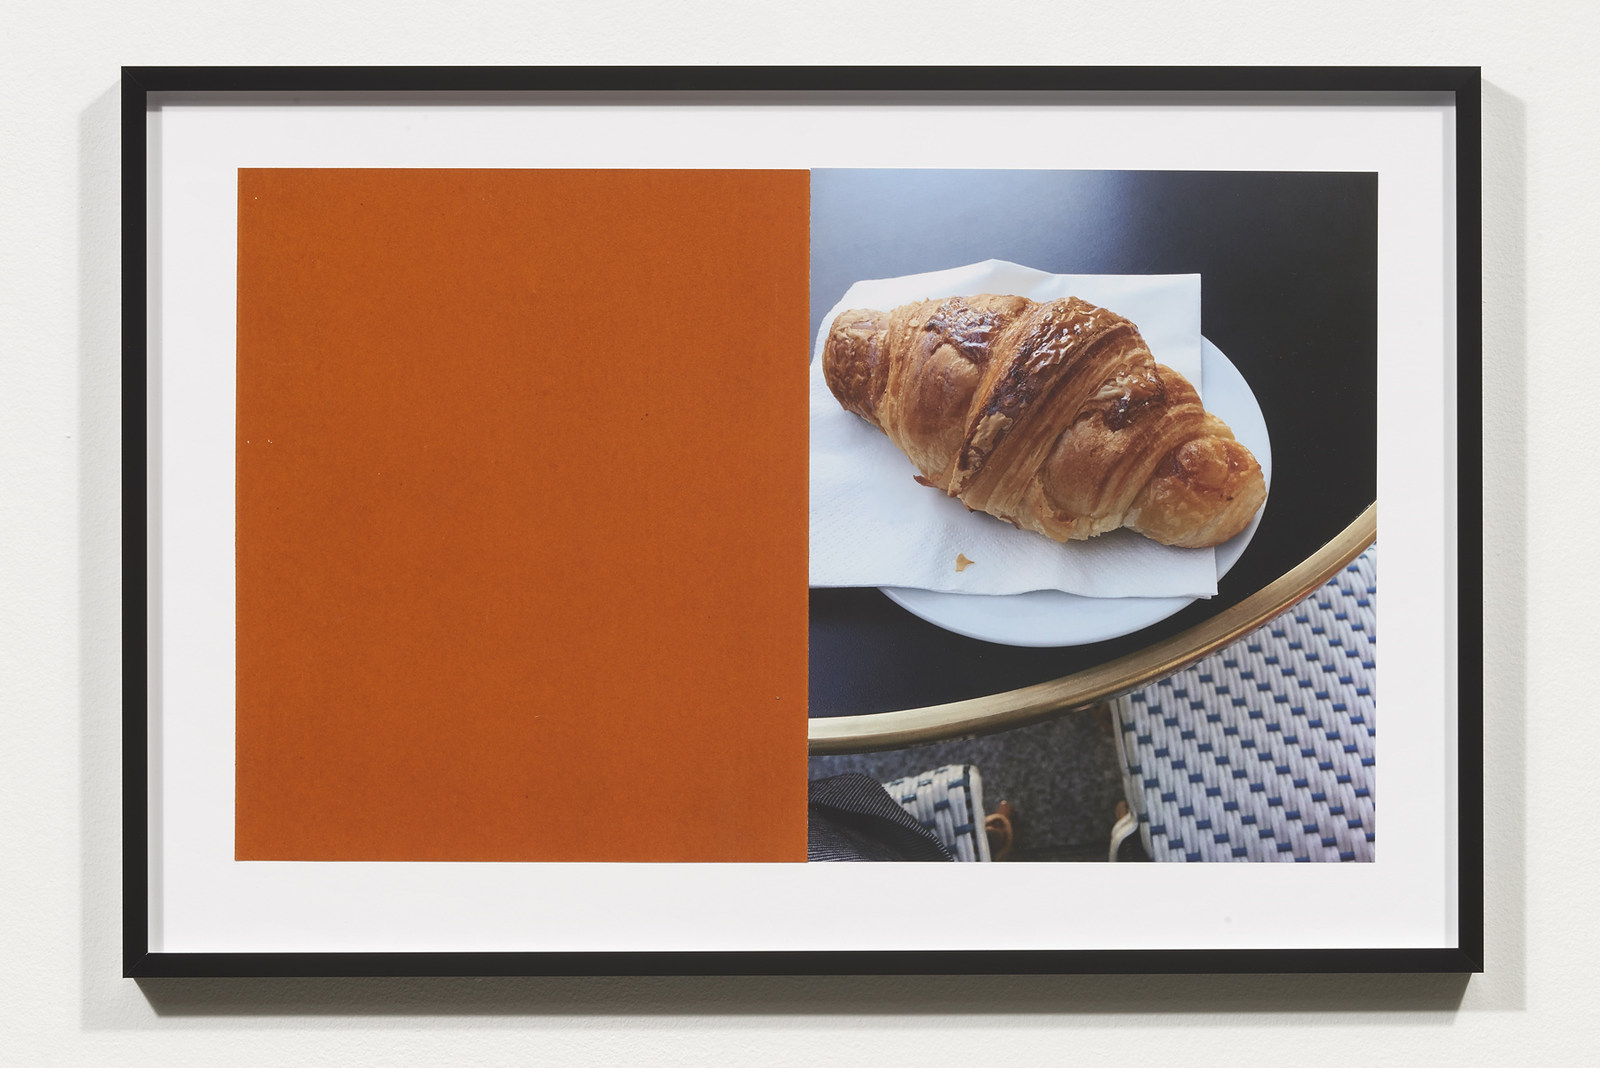 Wermers_Croissants & Architecture #9, 2016_C-print, sandpaper sheet, framed_14 3_8 x 21 1_2 in_NW00050PG